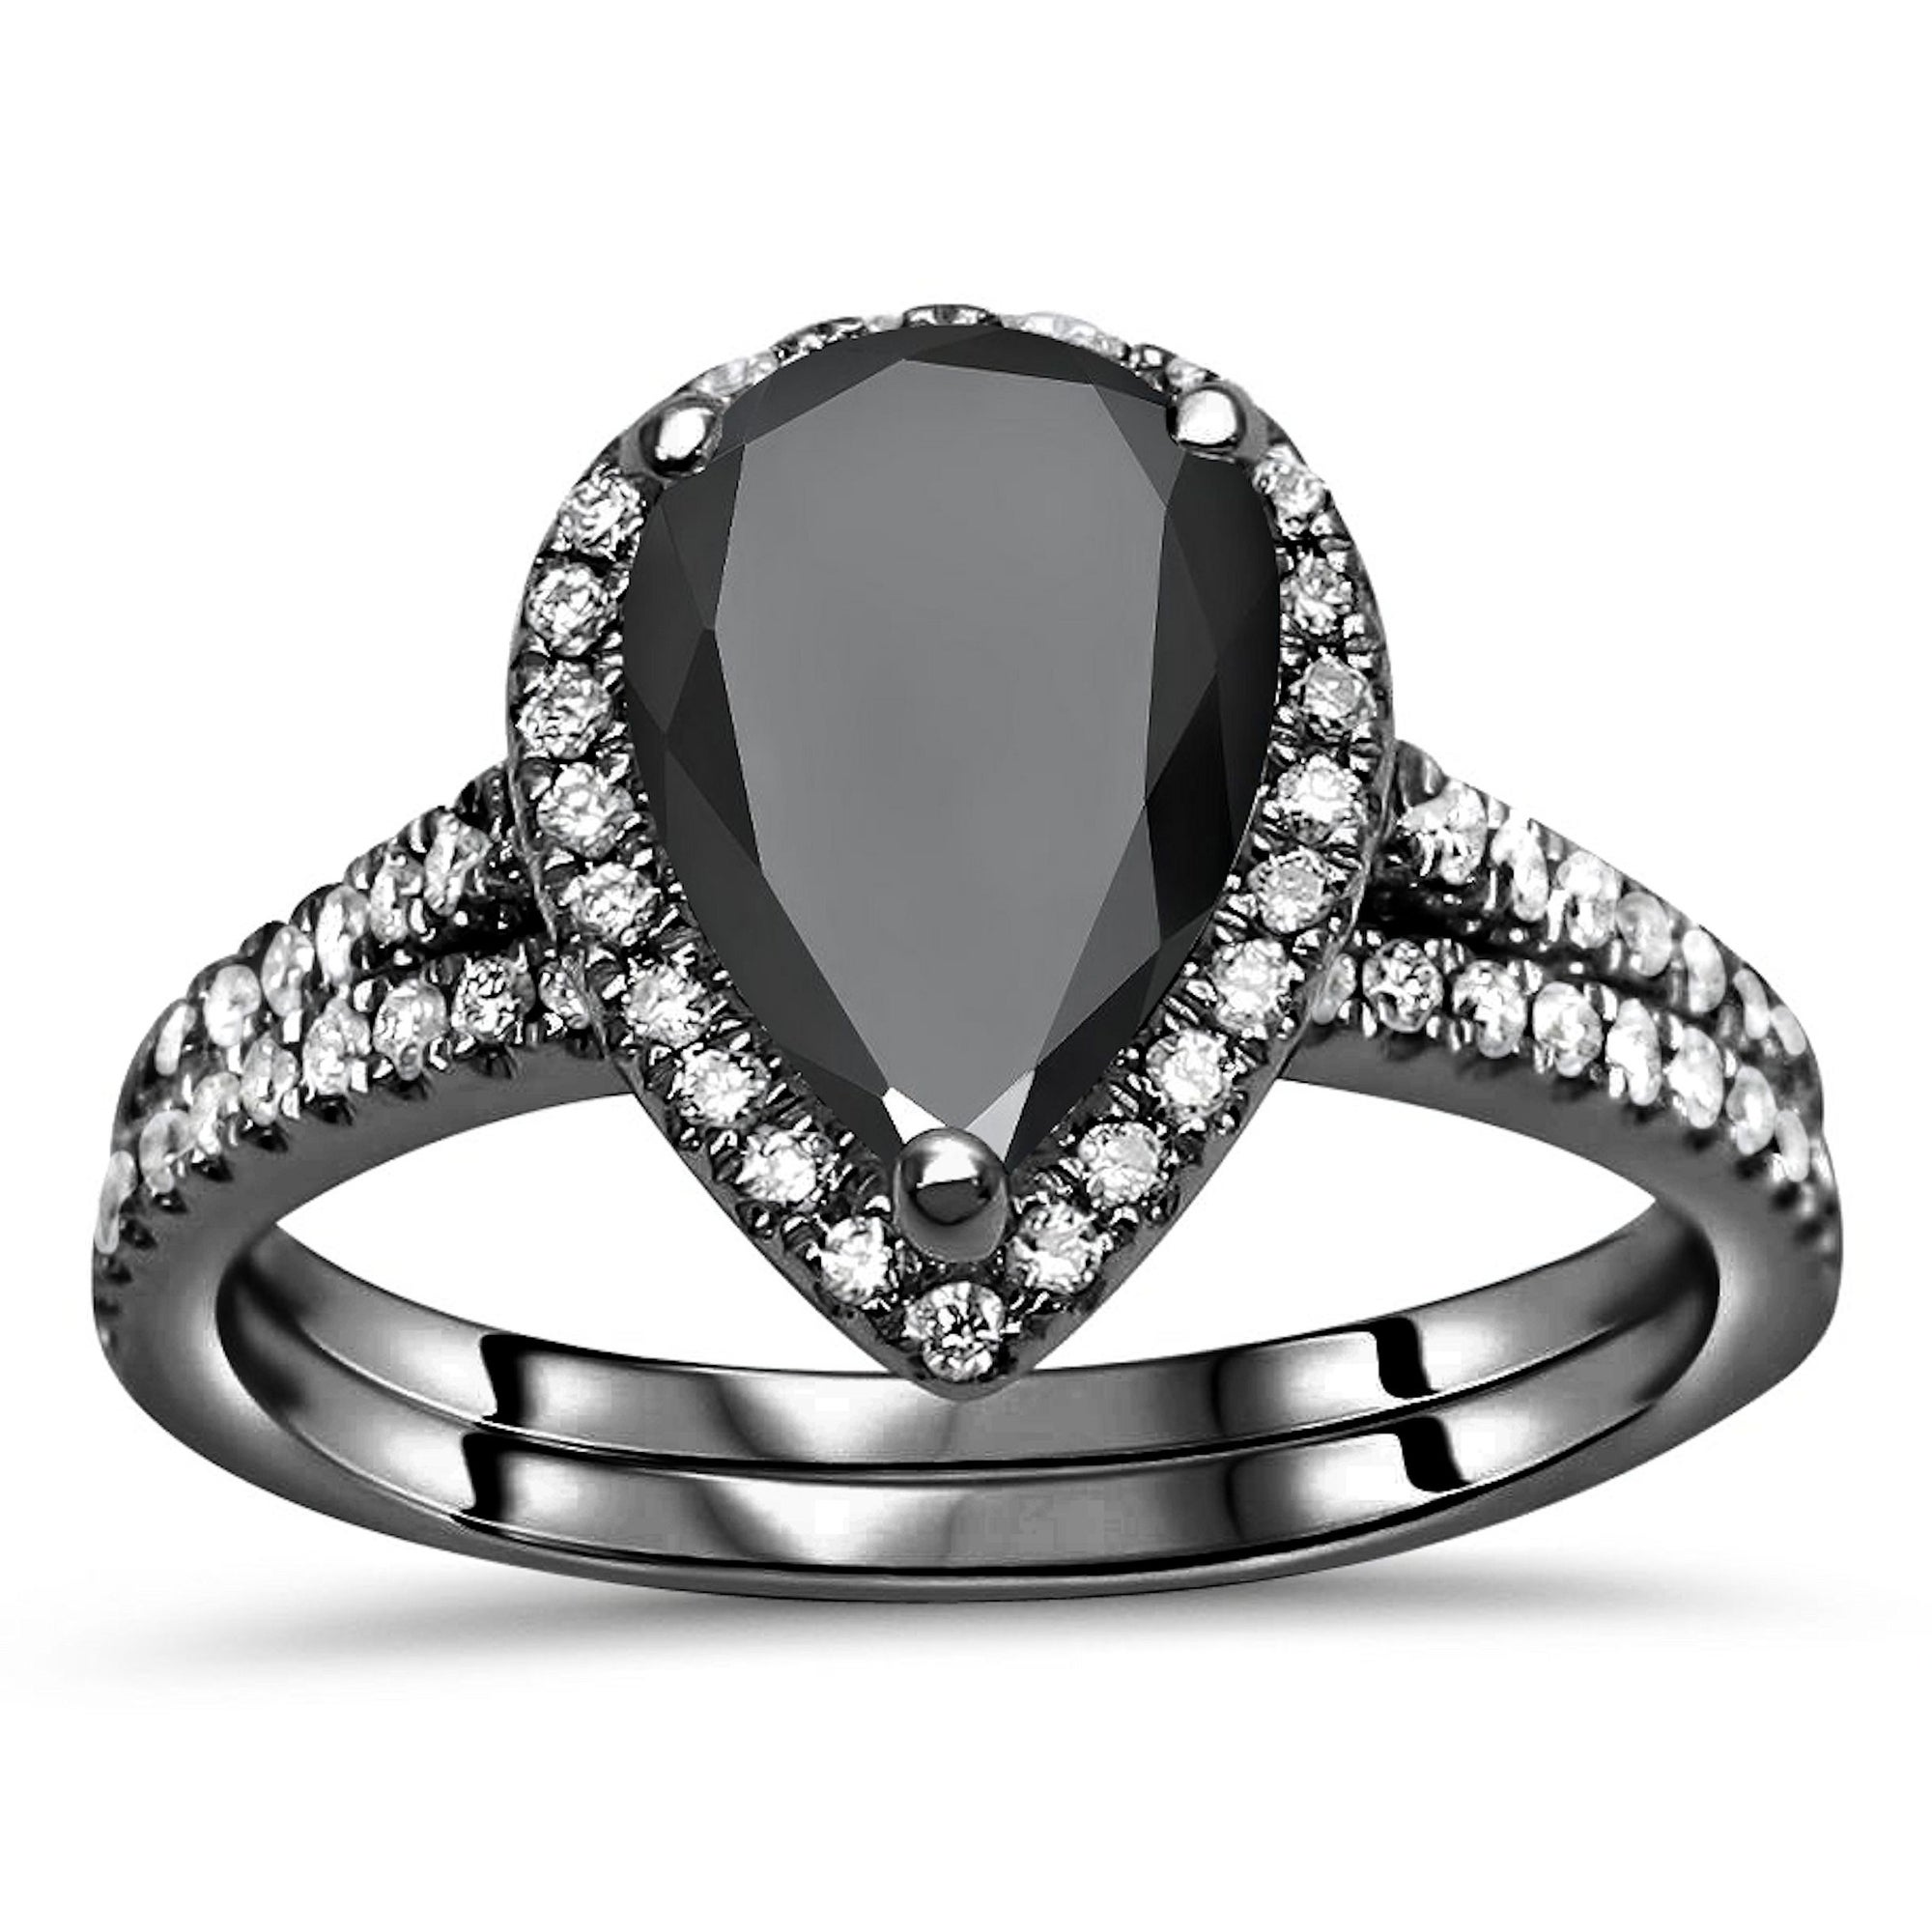 2 to 10 Carat Options Excellent Shine /& Luster ! Pear Cut  Black Diamond Ring in Black Gold Finish